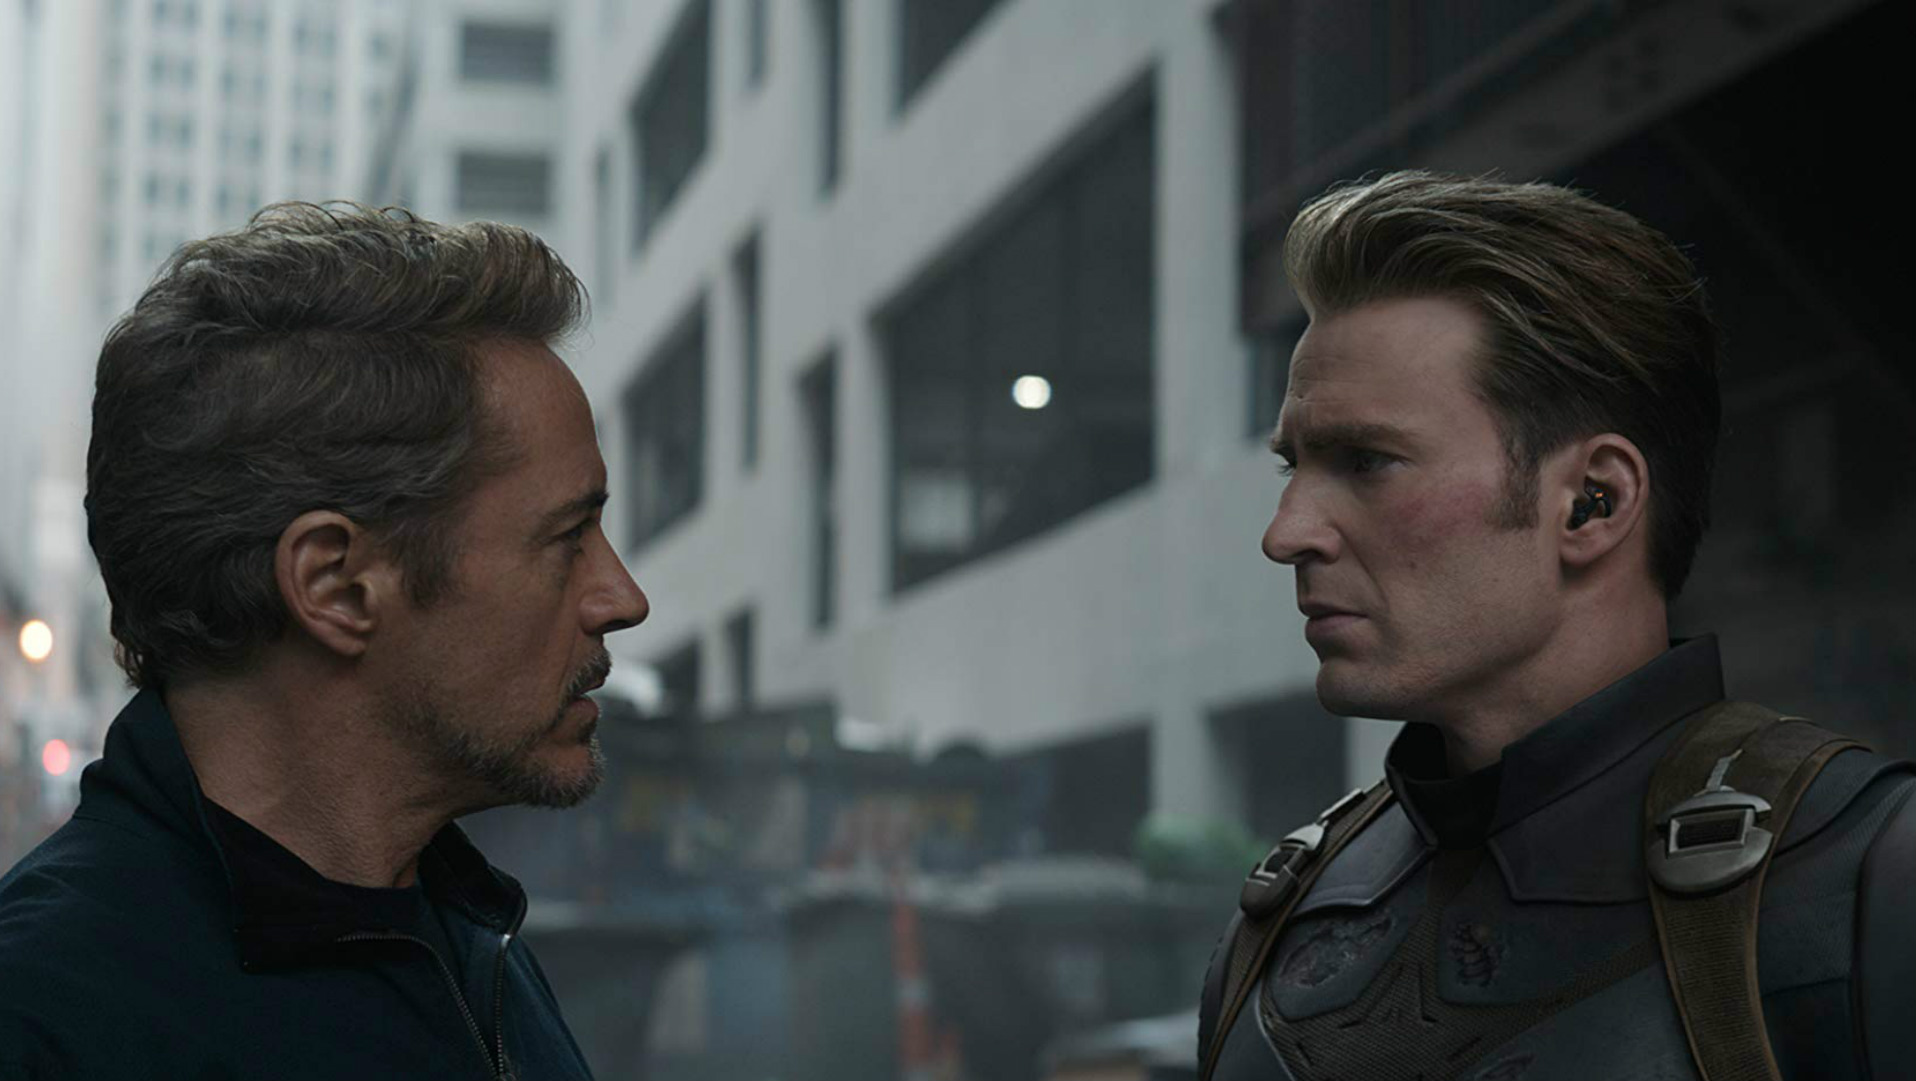 Avengers: Endgame: 8 Huge Spoilers and Why They Matter